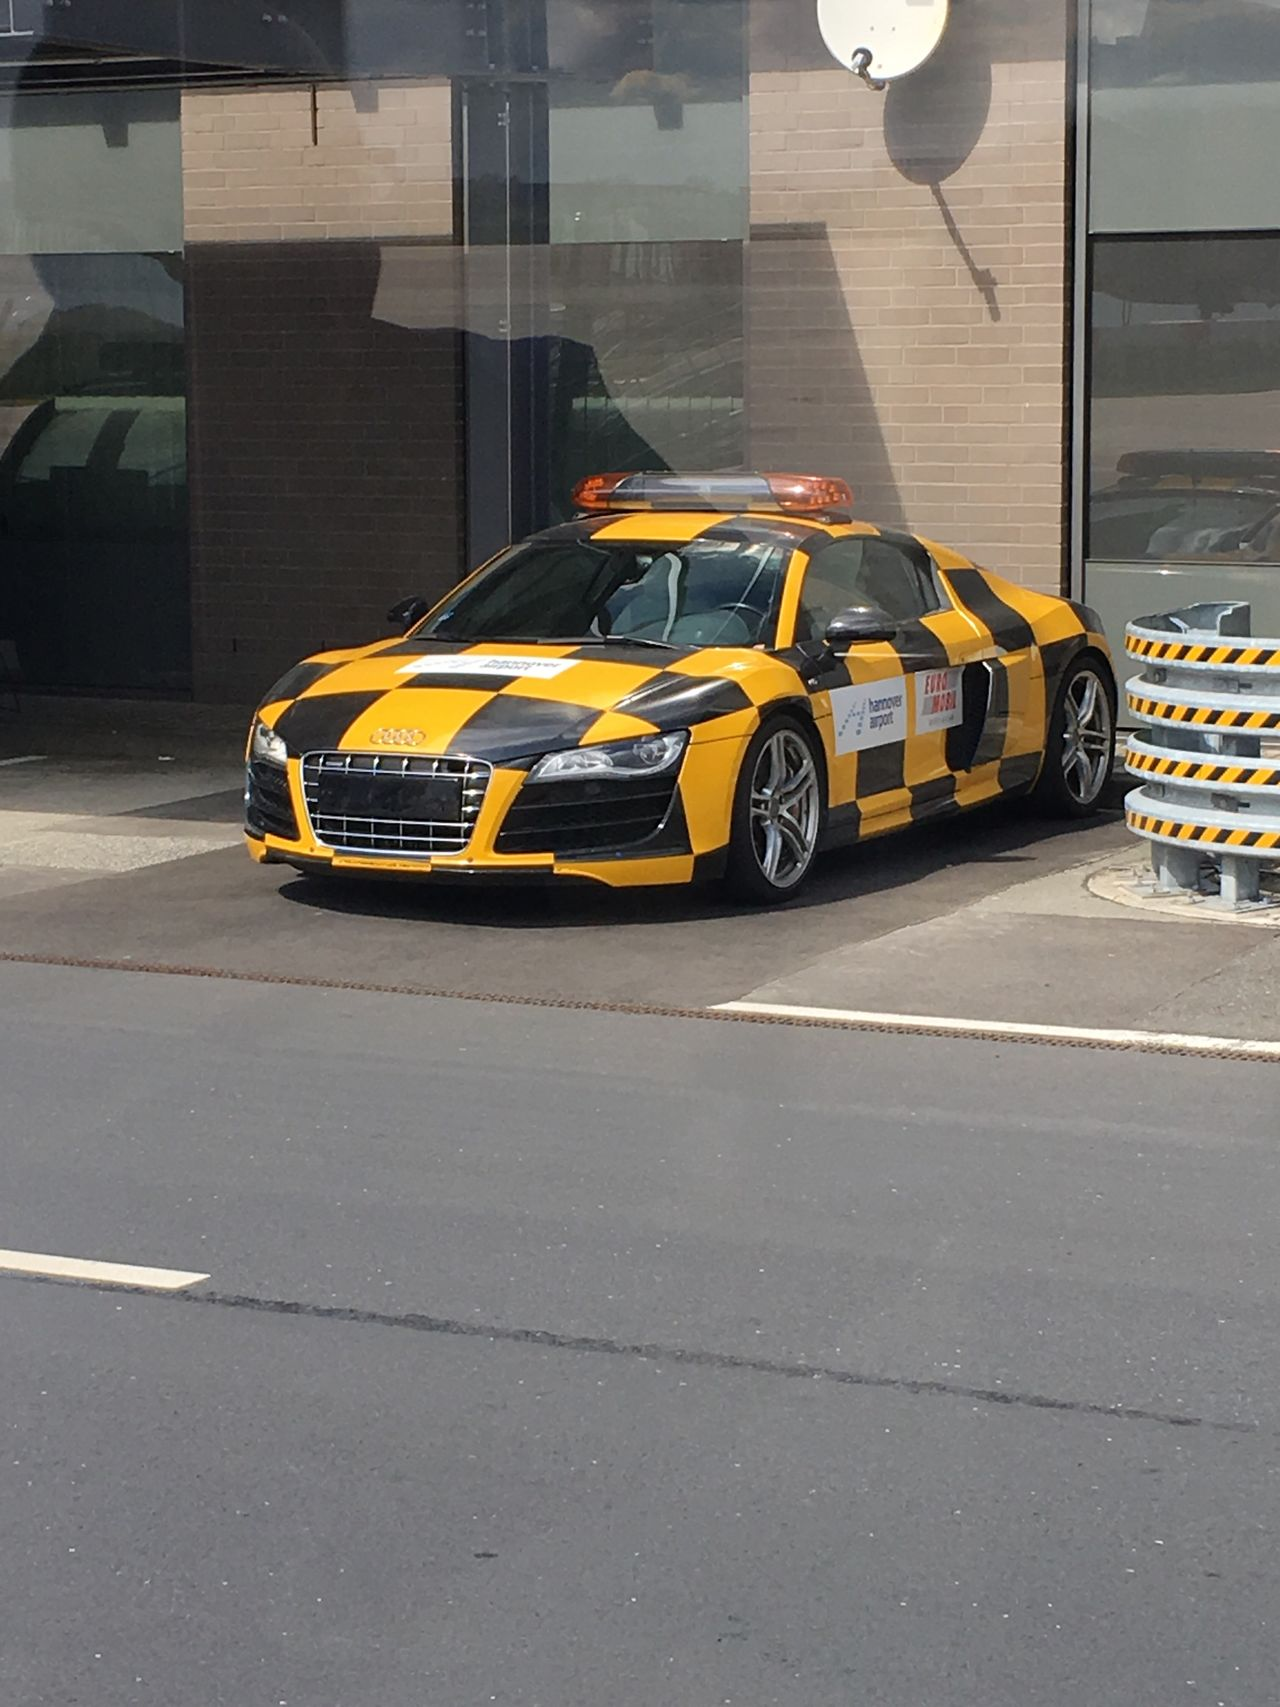 BMW Taxi Car Transportation Yellow Yellow Taxi Road Marking Land Vehicle Built Structure Architecture Street Mode Of Transport Building Exterior City Day Outdoors Road Public Transportation No People